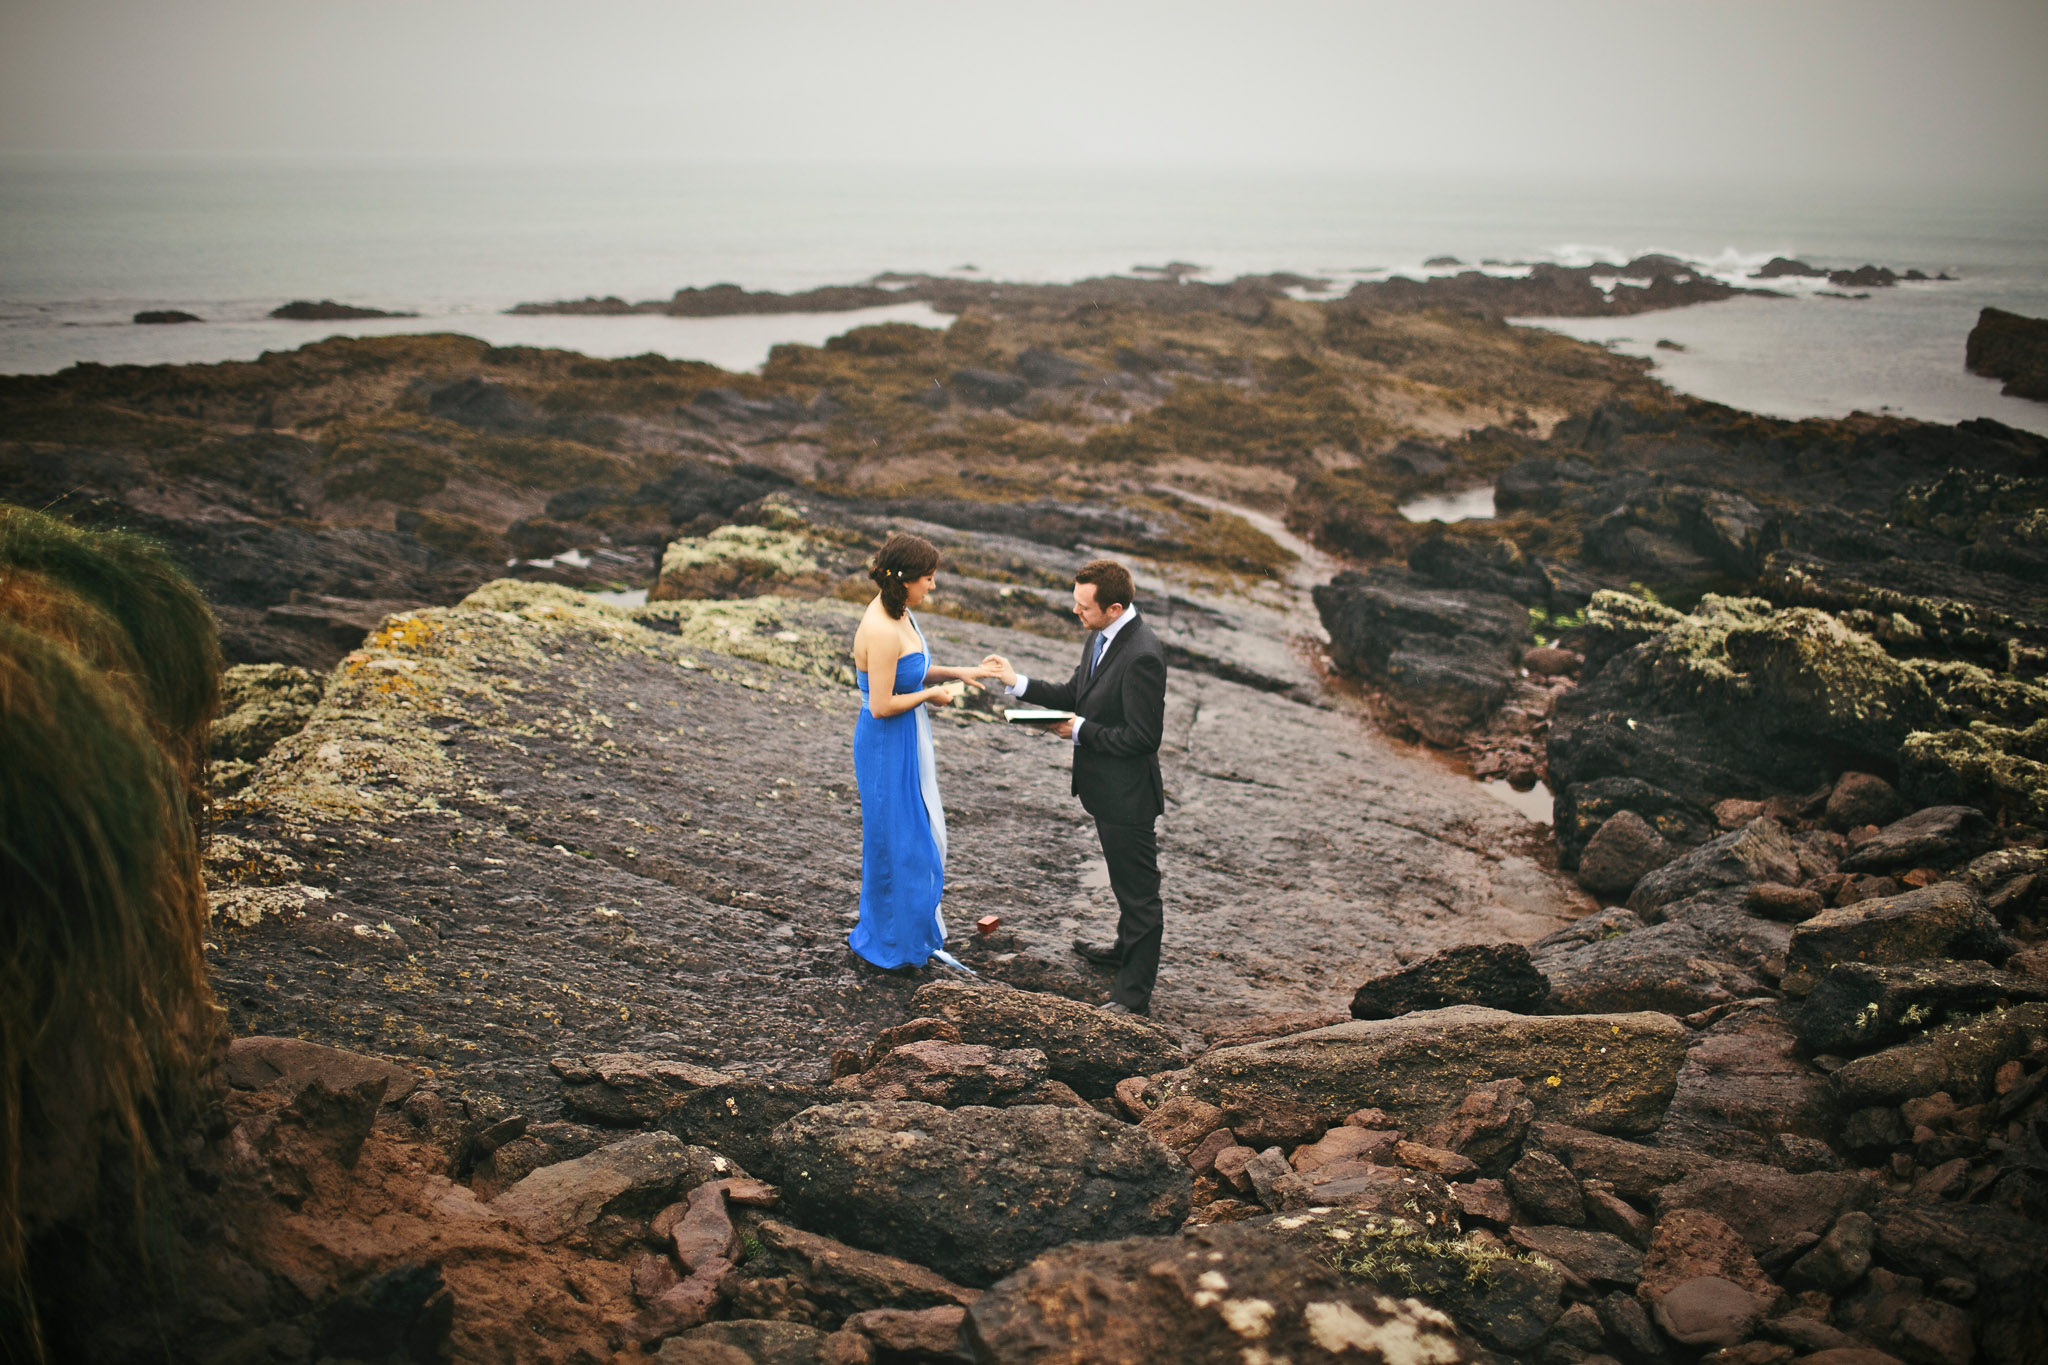 New York Wedding Photographers captured a bride and groom's elopement ceremony on the rocky shores during their Destination Wedding in Dingle, Ireland